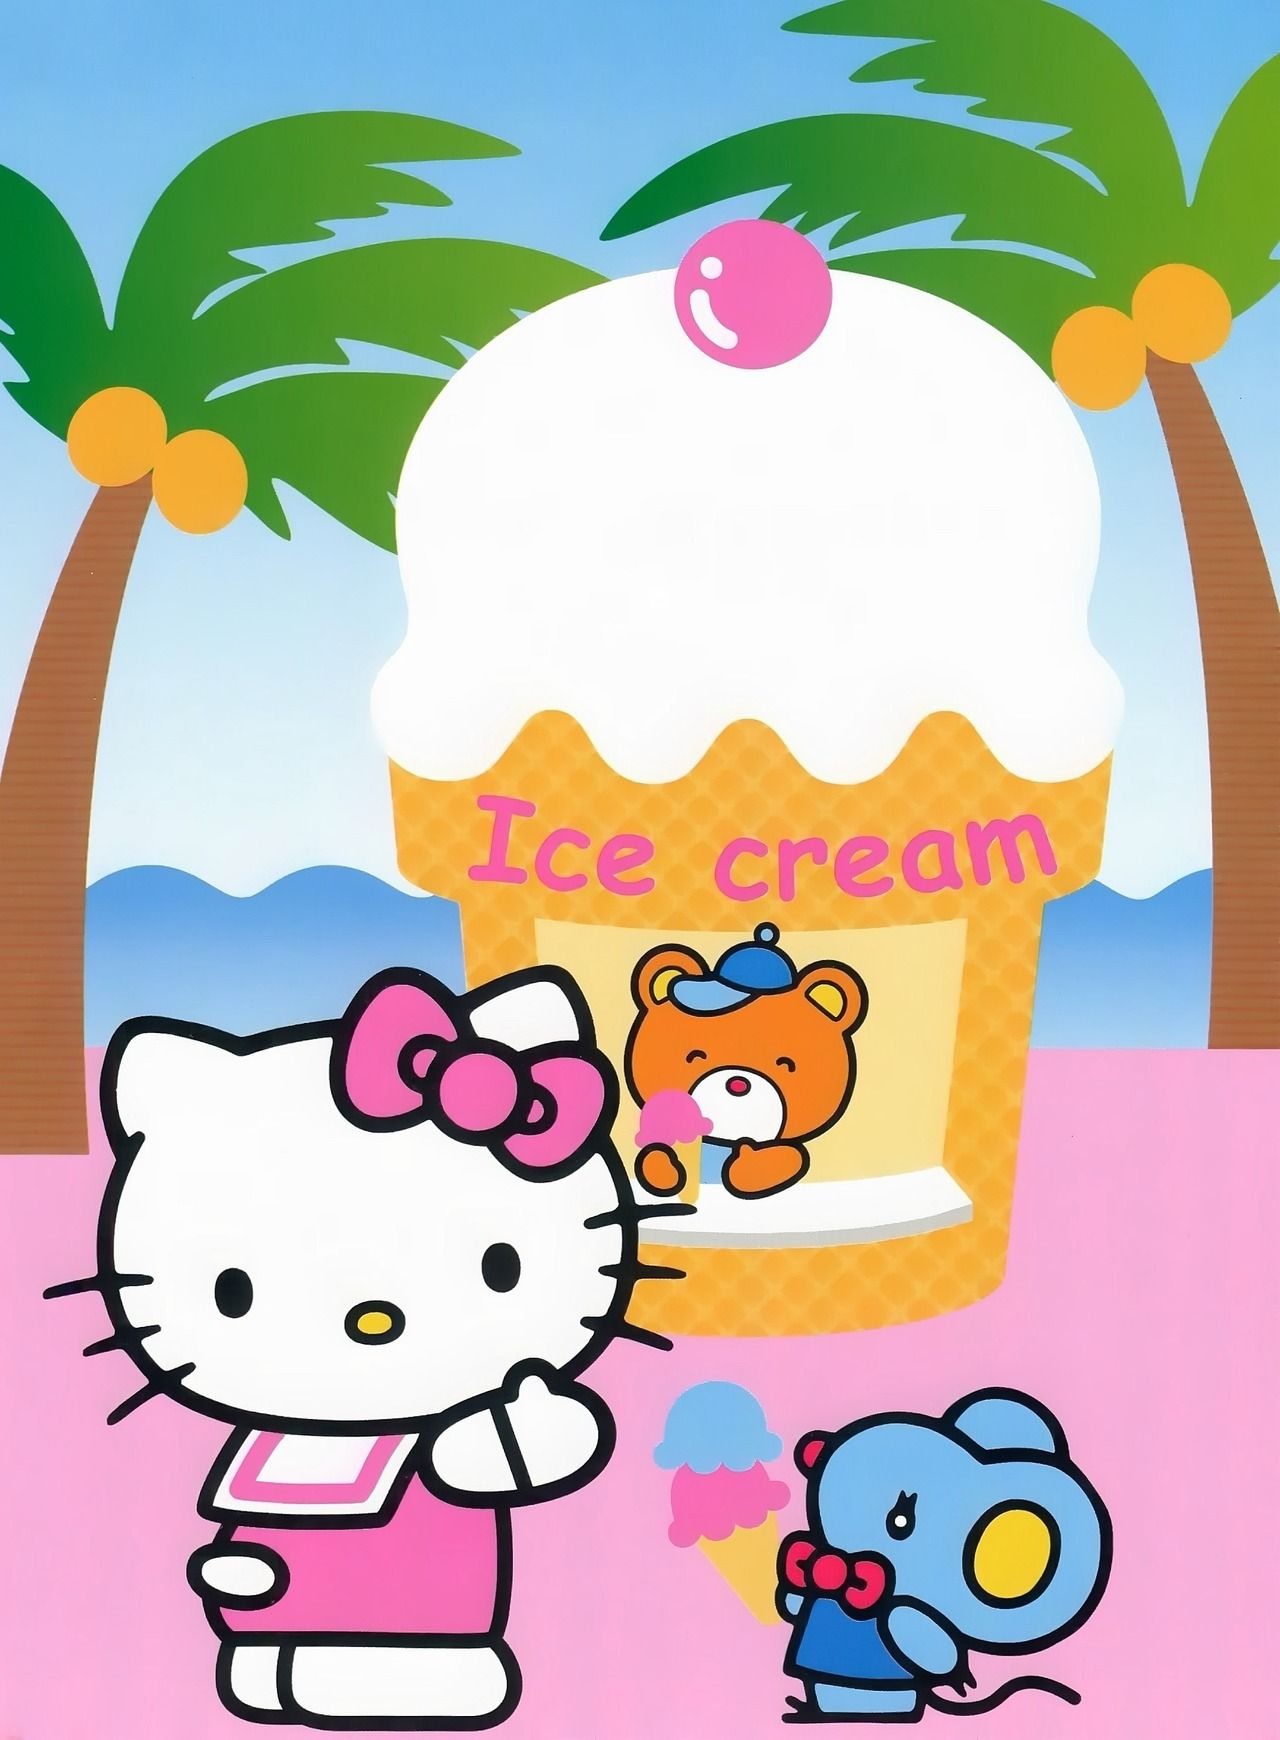 Simple Wallpaper Hello Kitty Ice Cream - 522c0ccf3a1e32ede274eeab221ae7f0  Image_452392.jpg